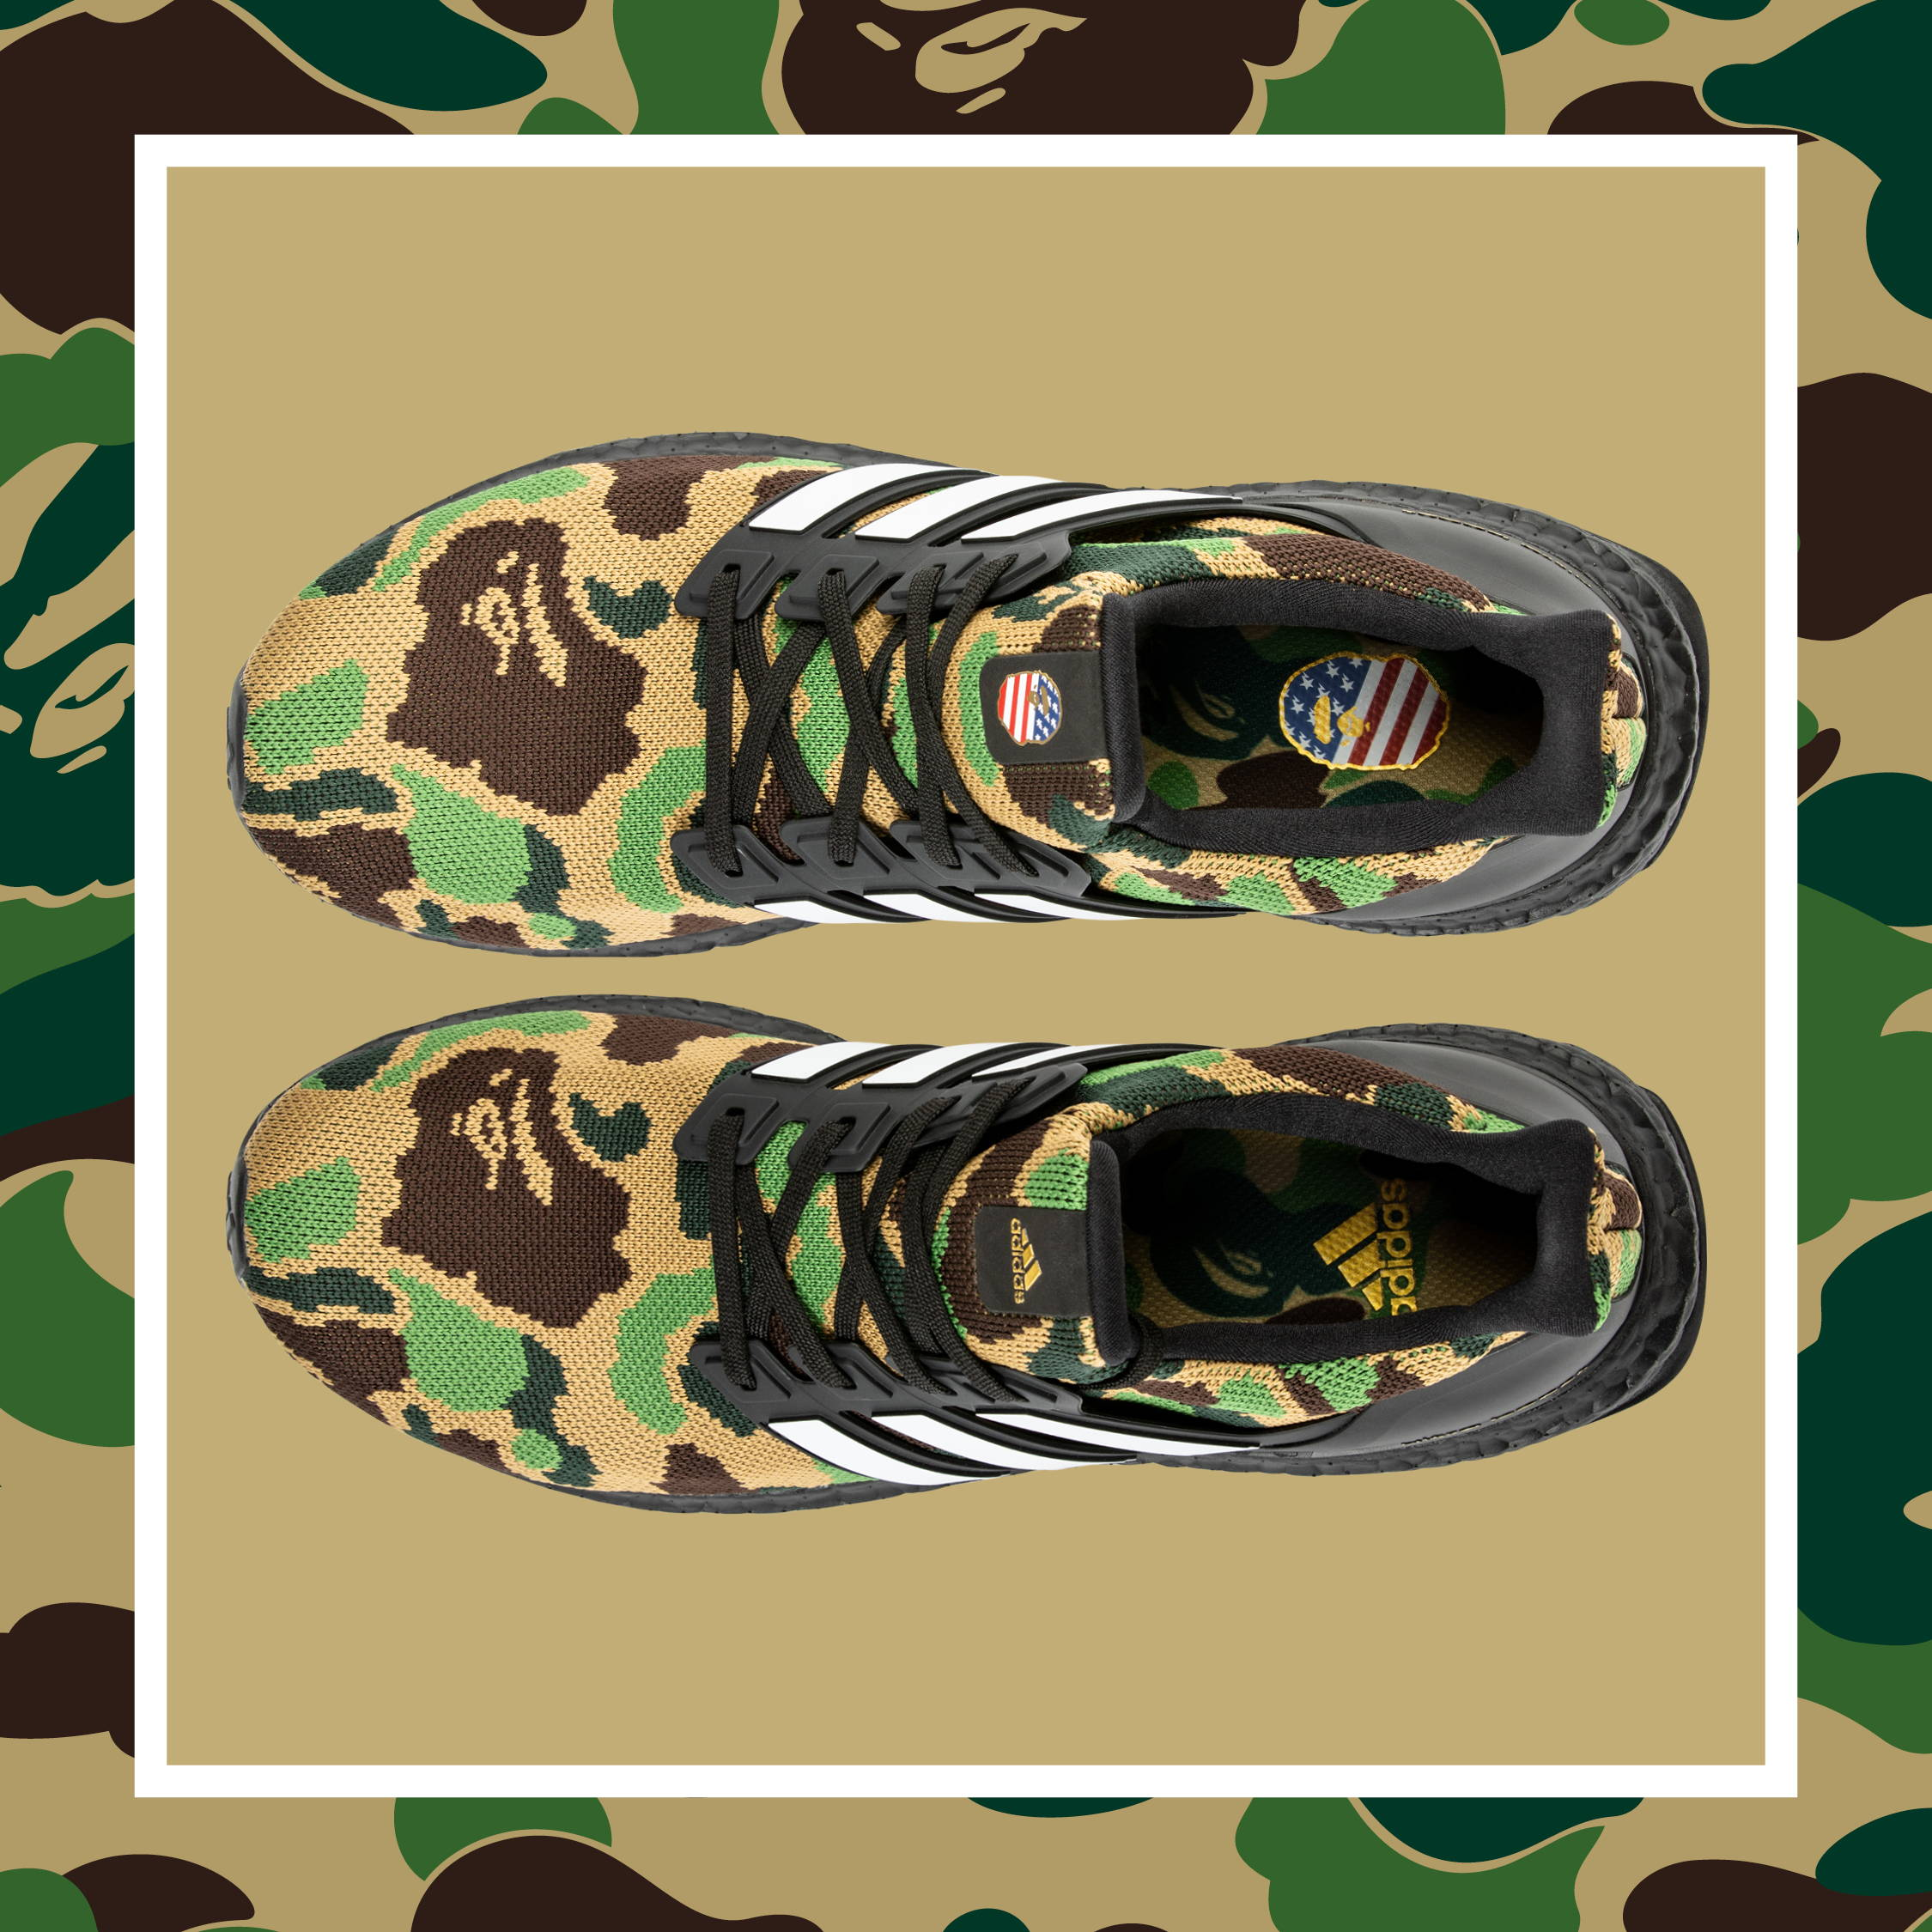 3be04a7a To celebrate one of the biggest sporting events of the year, adidas has teamed  up with iconic Japanese streetwear brand A Bathing Ape® (BAPE®) for a ...